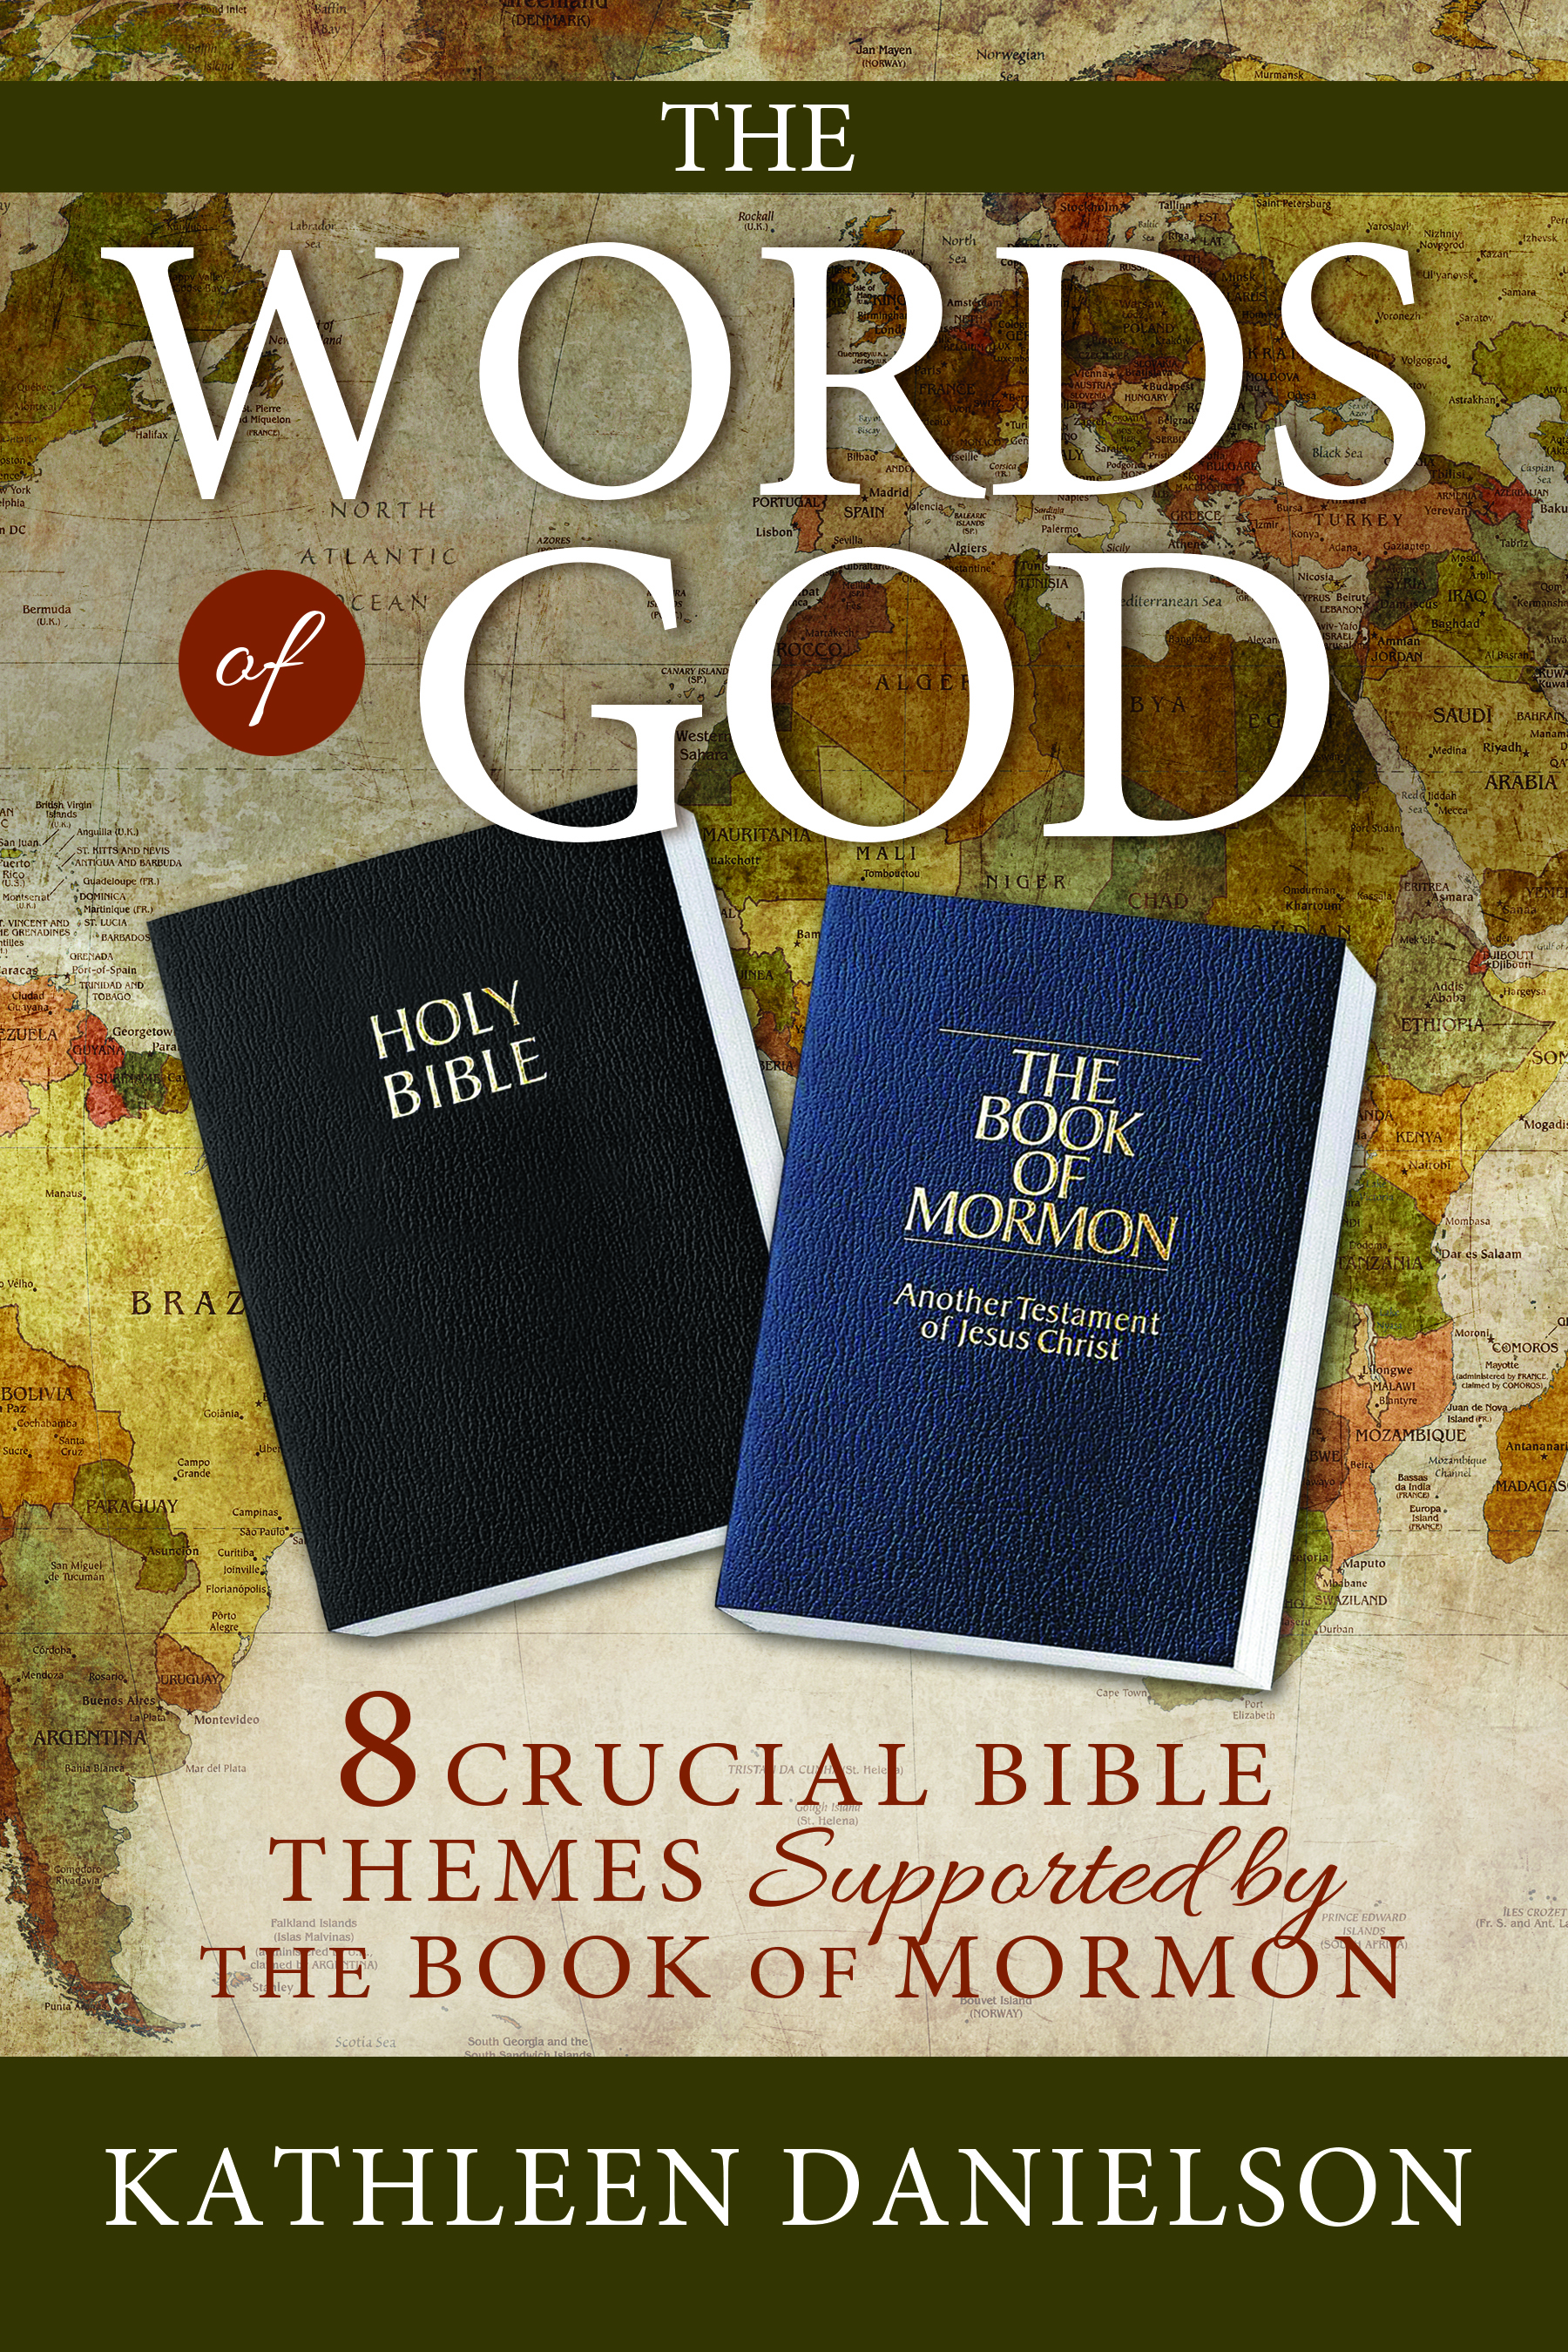 Book review: 'The Words of God' shows how the Book of Mormon supports Bible teachings